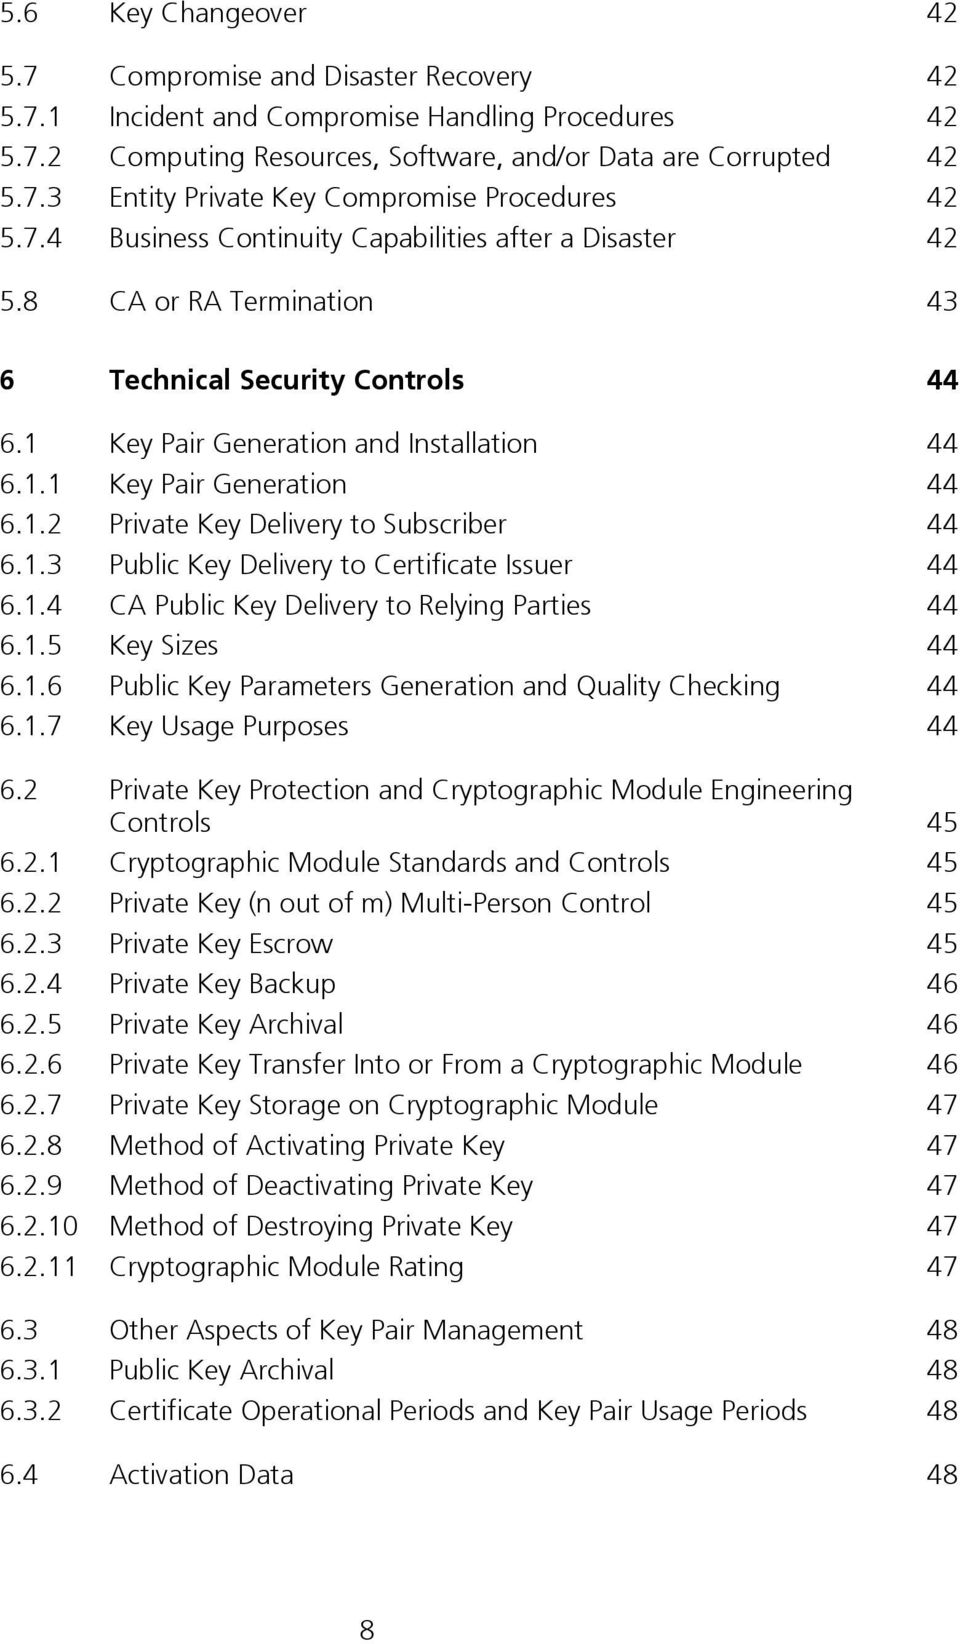 1.3 Public Key Delivery to Certificate Issuer 44 6.1.4 CA Public Key Delivery to Relying Parties 44 6.1.5 Key Sizes 44 6.1.6 Public Key Parameters Generation and Quality Checking 44 6.1.7 Key Usage Purposes 44 6.